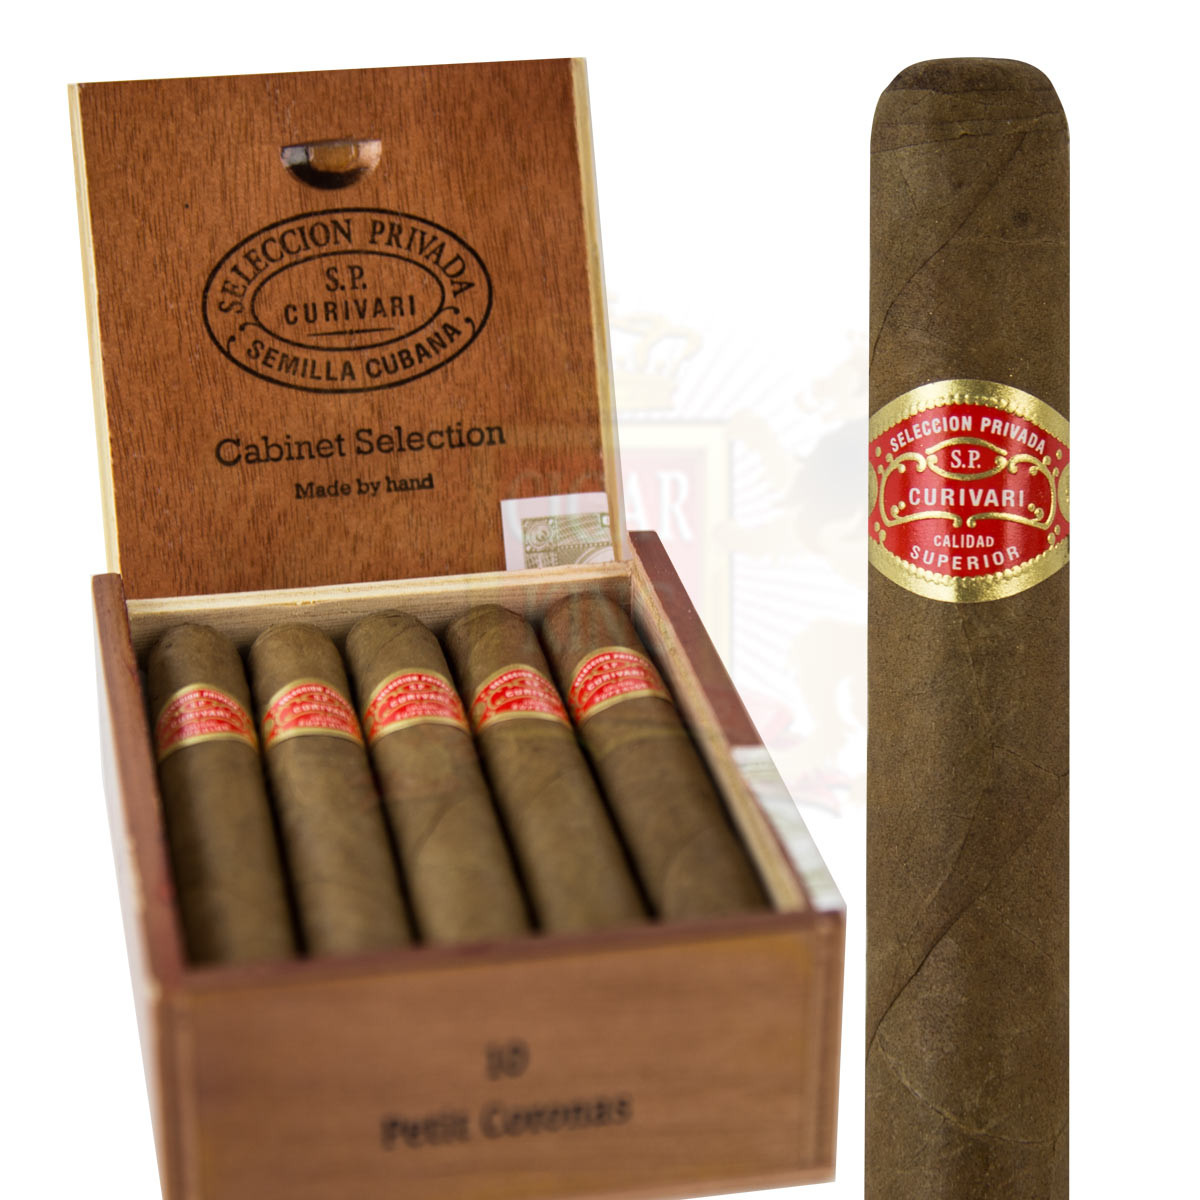 Curivari Seleccion Privada Corona (5.13x42 / Box 10)